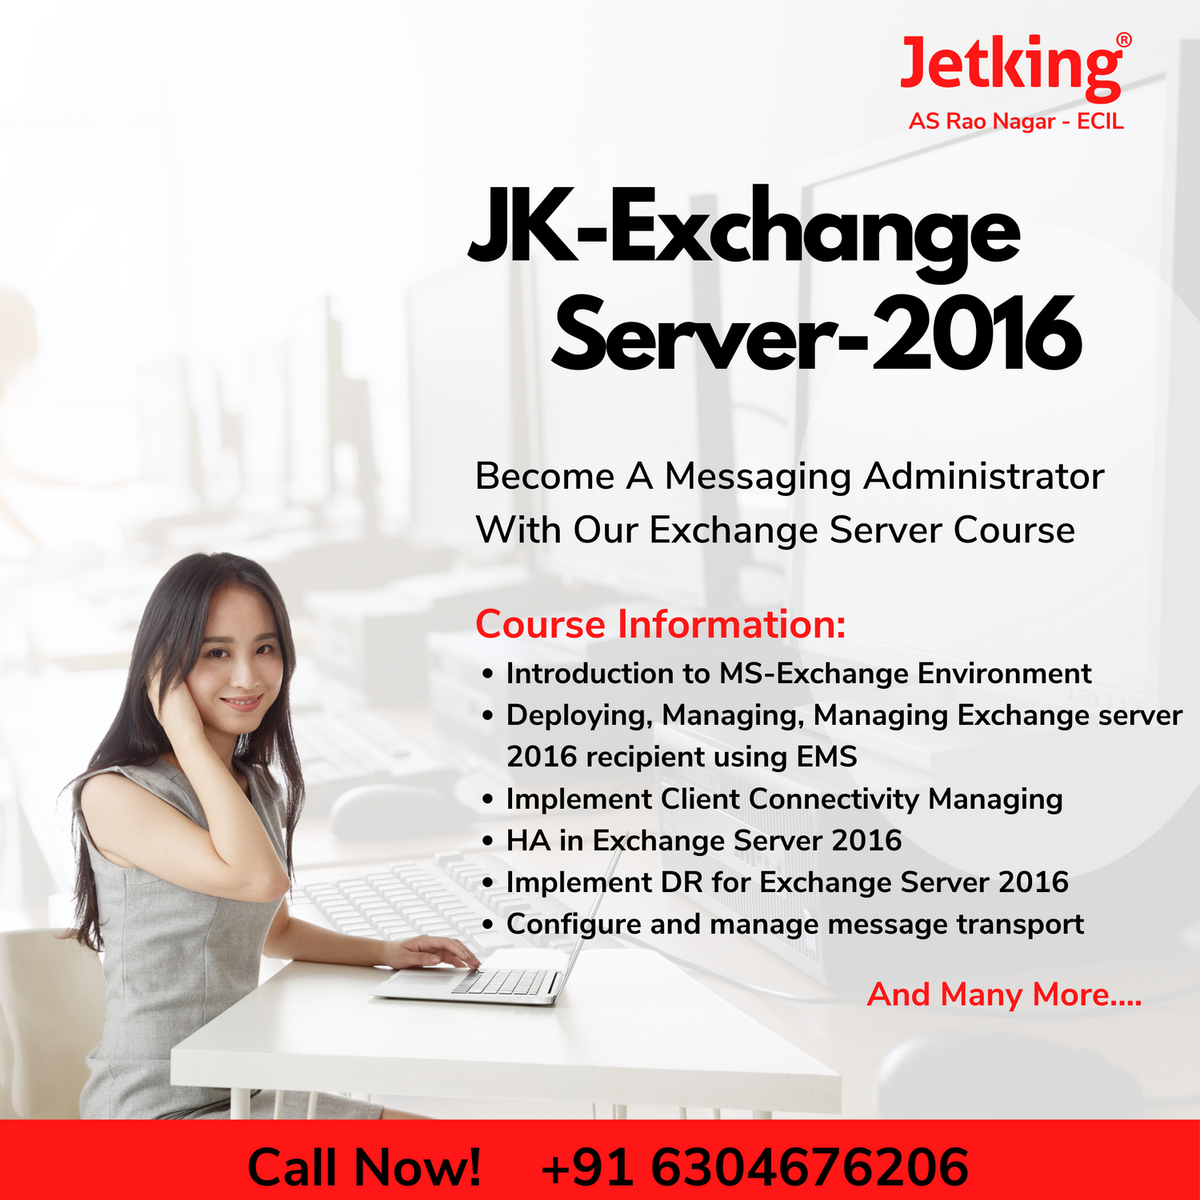 Offering the best exchange server courses. Learn throughout with the best. Visit our Website https://www.jetking.com/  #computer #technology #computerscience #computerengineering #AWS #Ethicalhacking #coding #webdeveloper #software #programmers #Jetking  #cloudcomputingpic.twitter.com/nNyOdNSBng